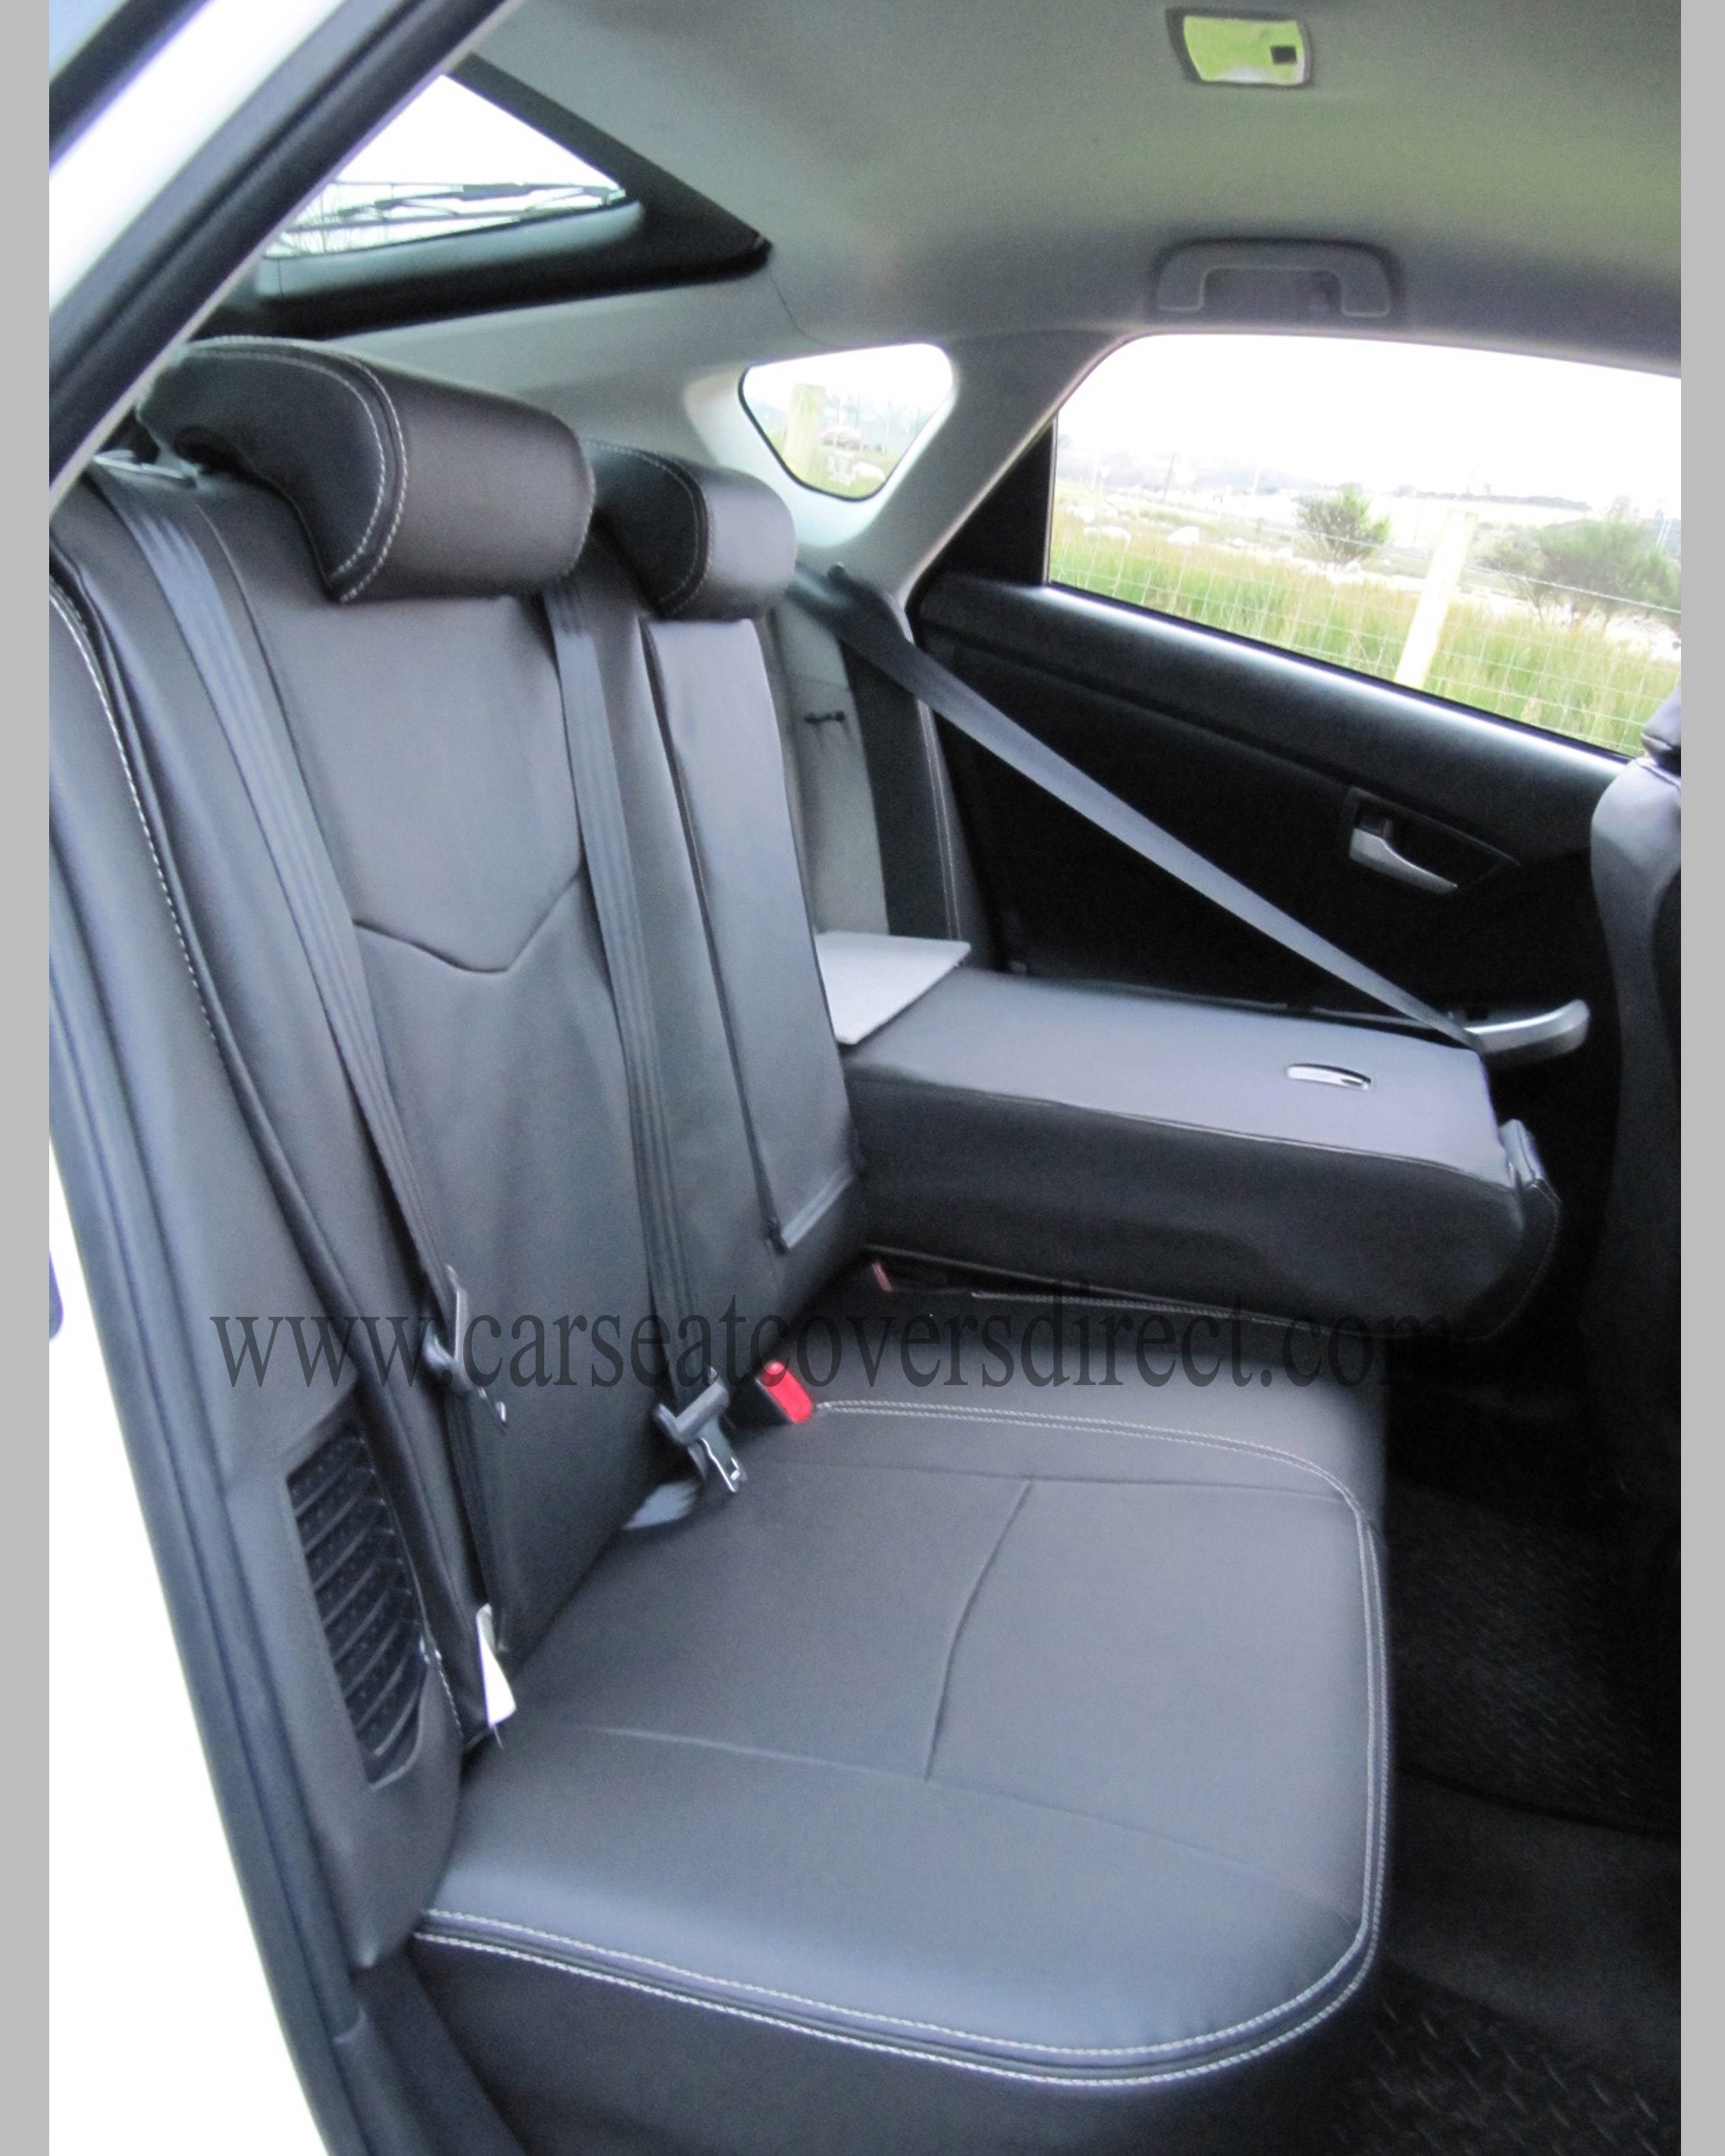 toyota prius seat covers custom car seat covers custom tailored seat covers car seat covers. Black Bedroom Furniture Sets. Home Design Ideas